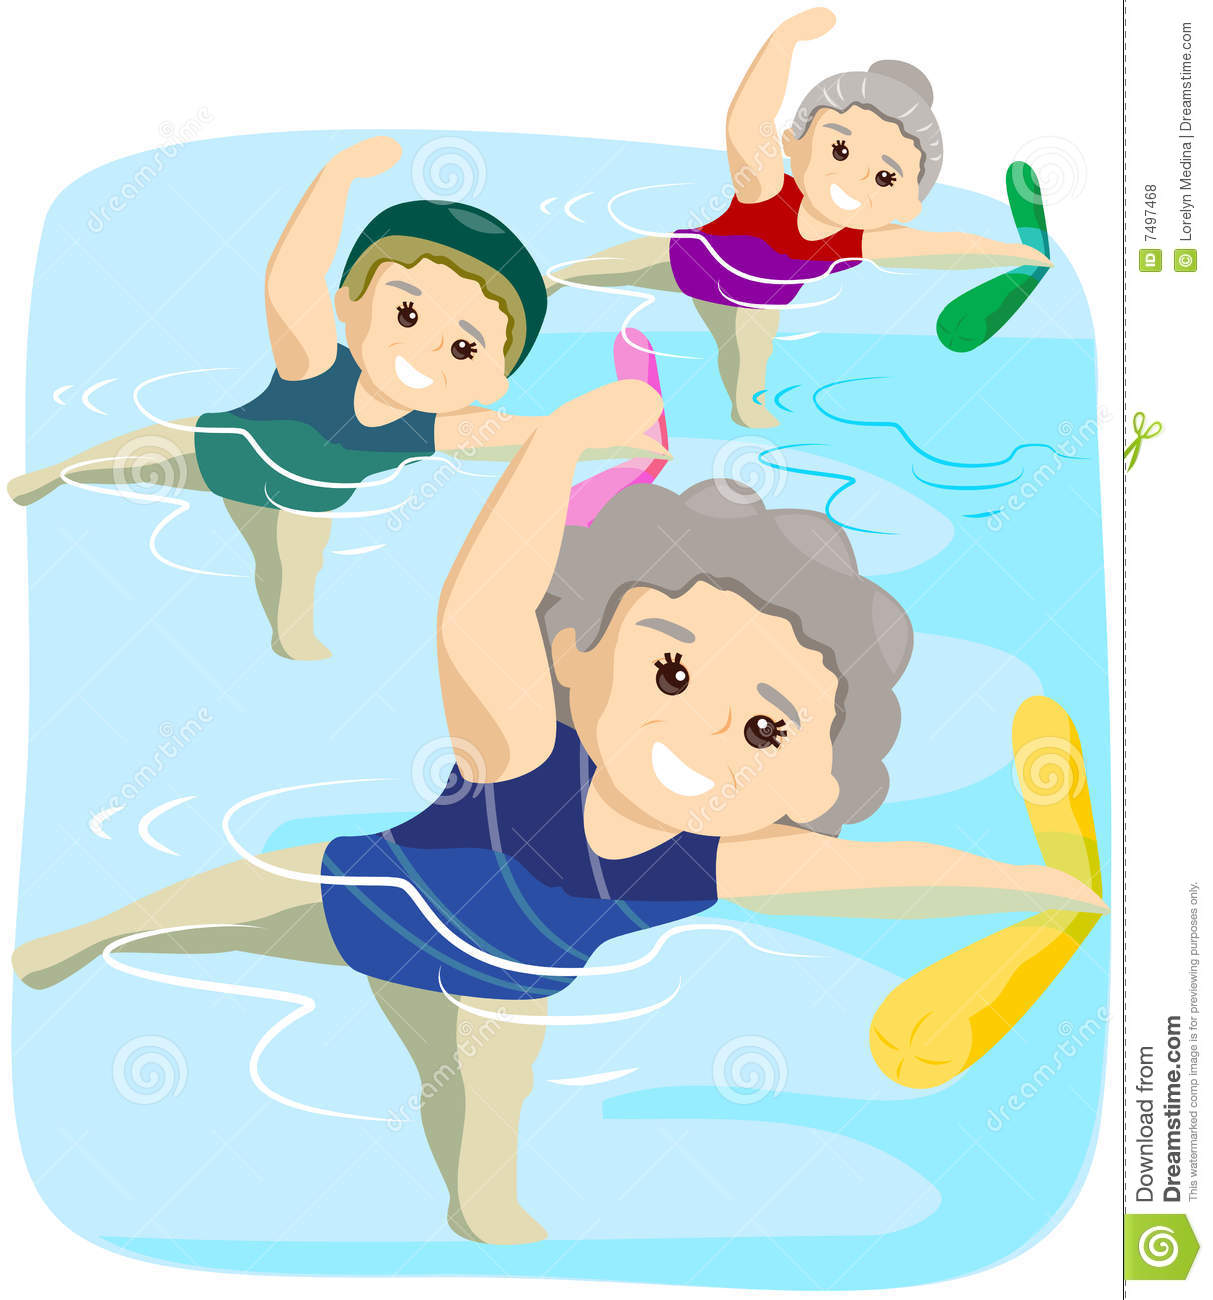 Royalty Free Stock Photos  Water Exercise  Image  7497468